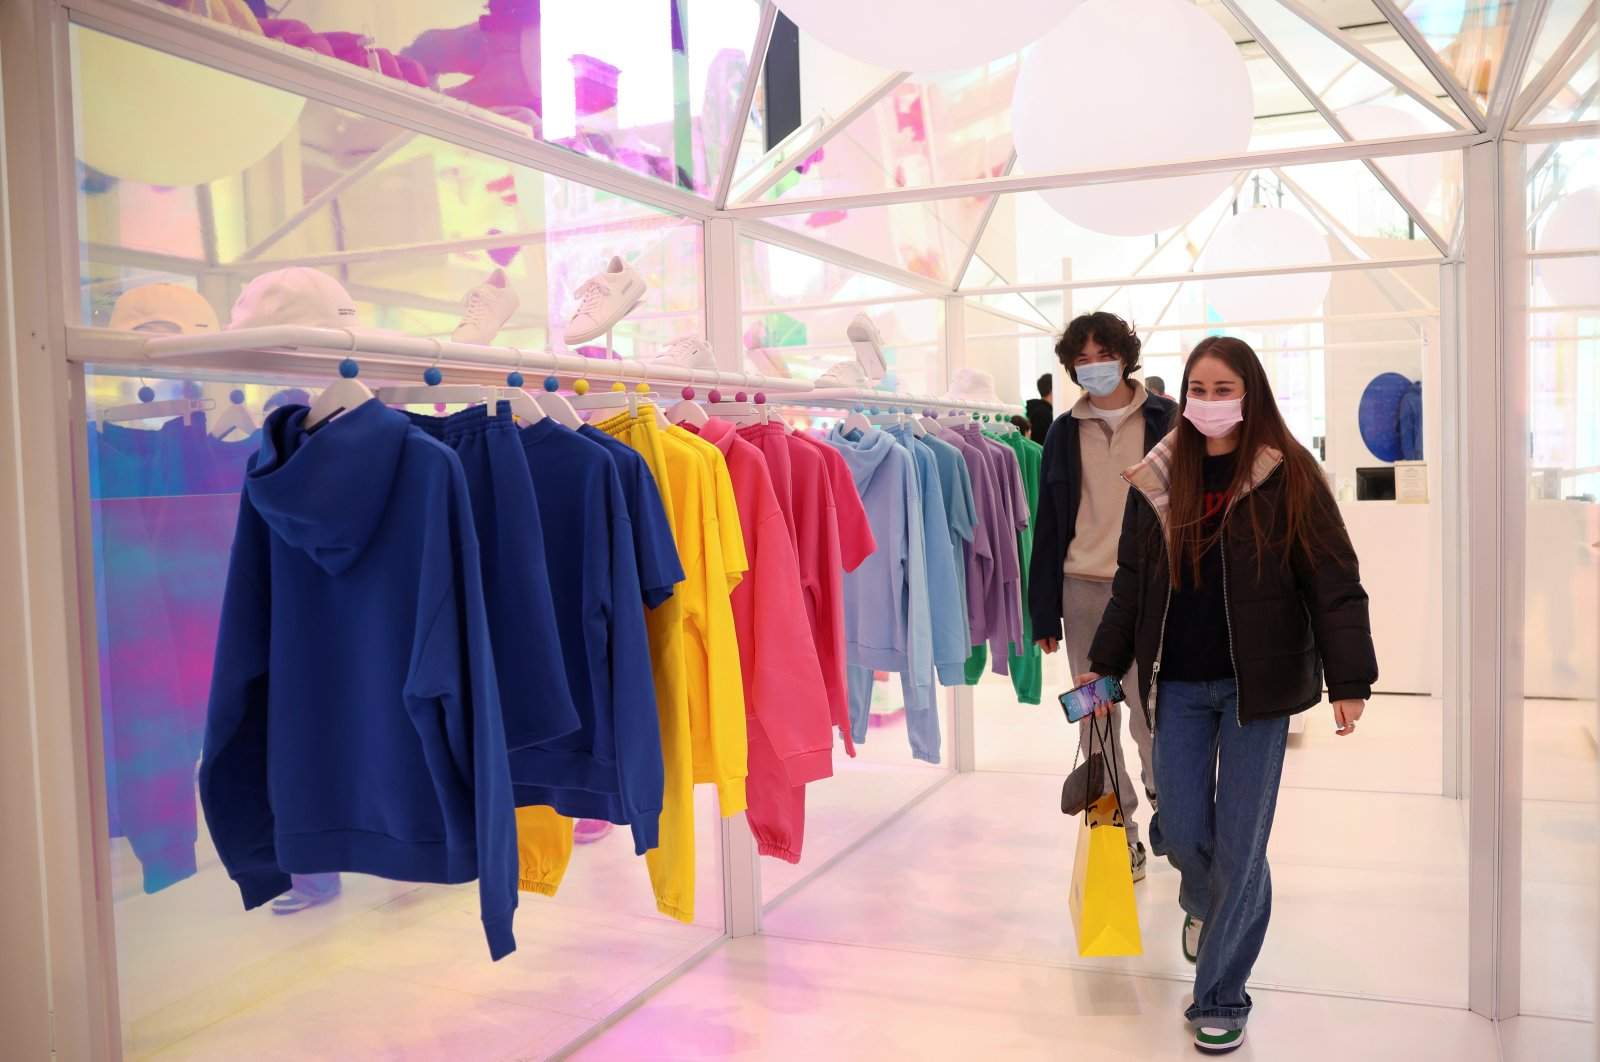 People shop in Selfridges department store on Oxford street, as the coronavirus disease (COVID-19) restrictions ease, in London, Britain, April 12, 2021. (Reuters Photo)